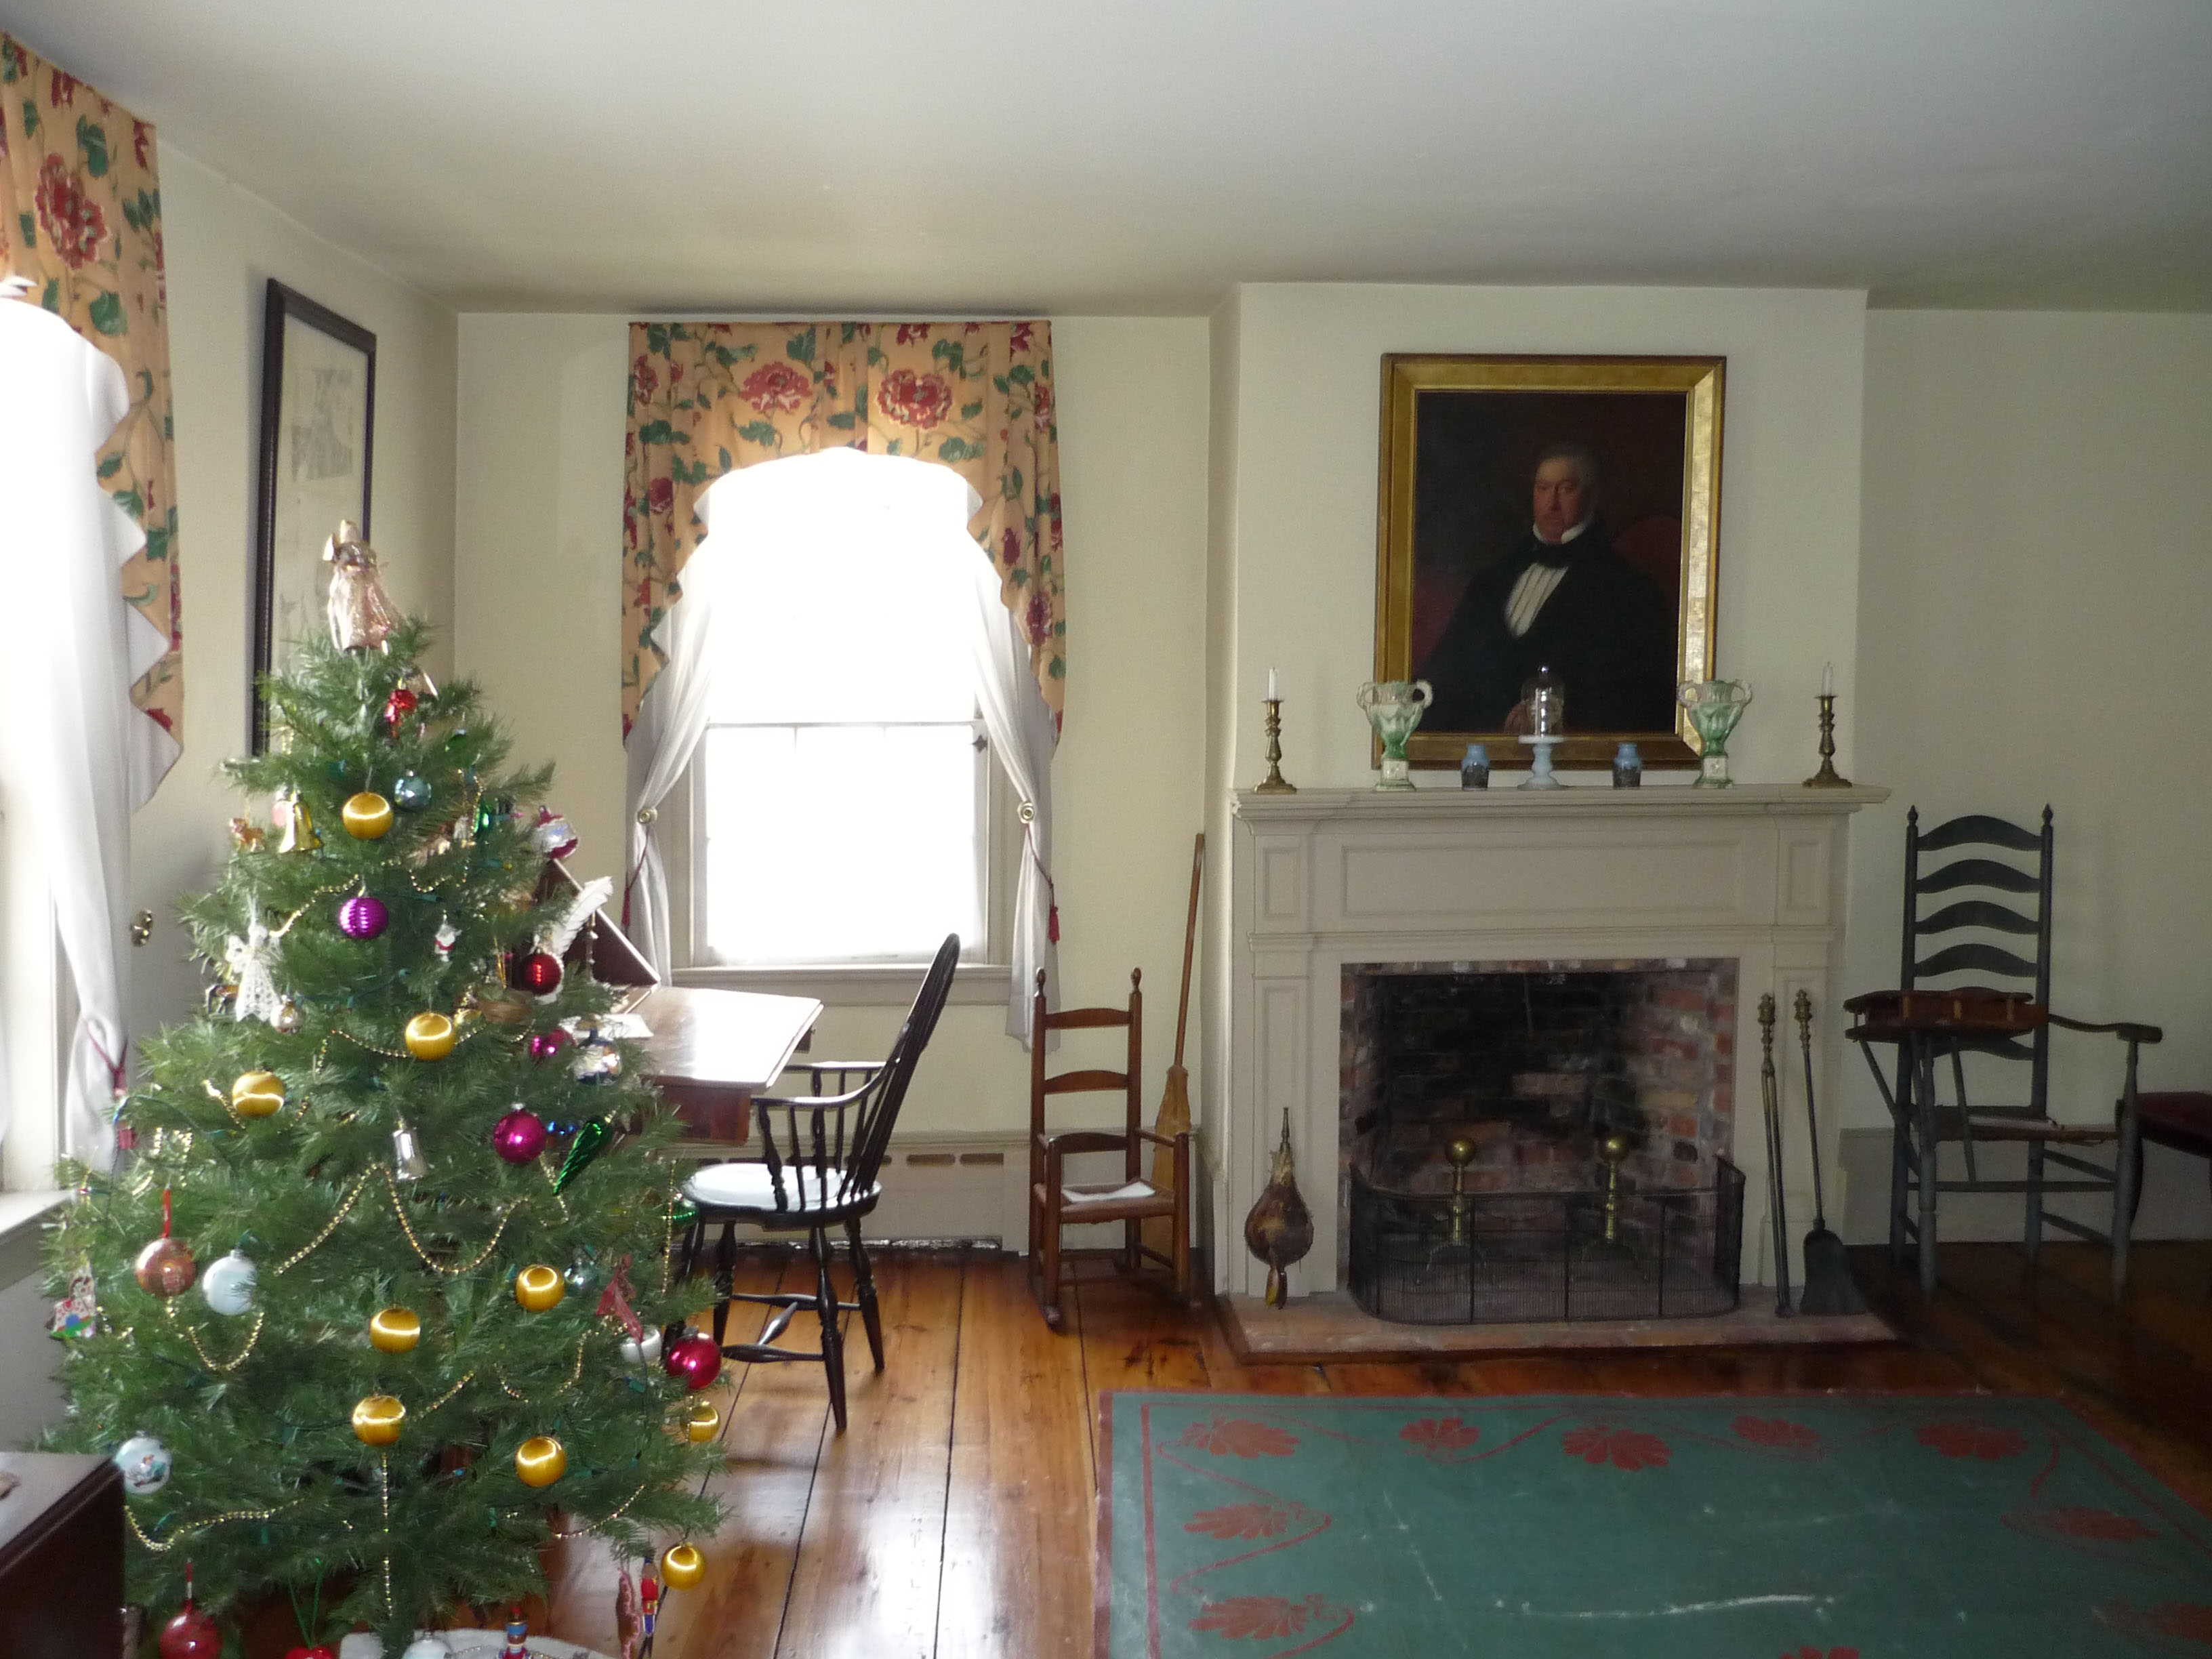 File oysterbay newyork wightman house inside jpg wikimedia commons - Inside house ...